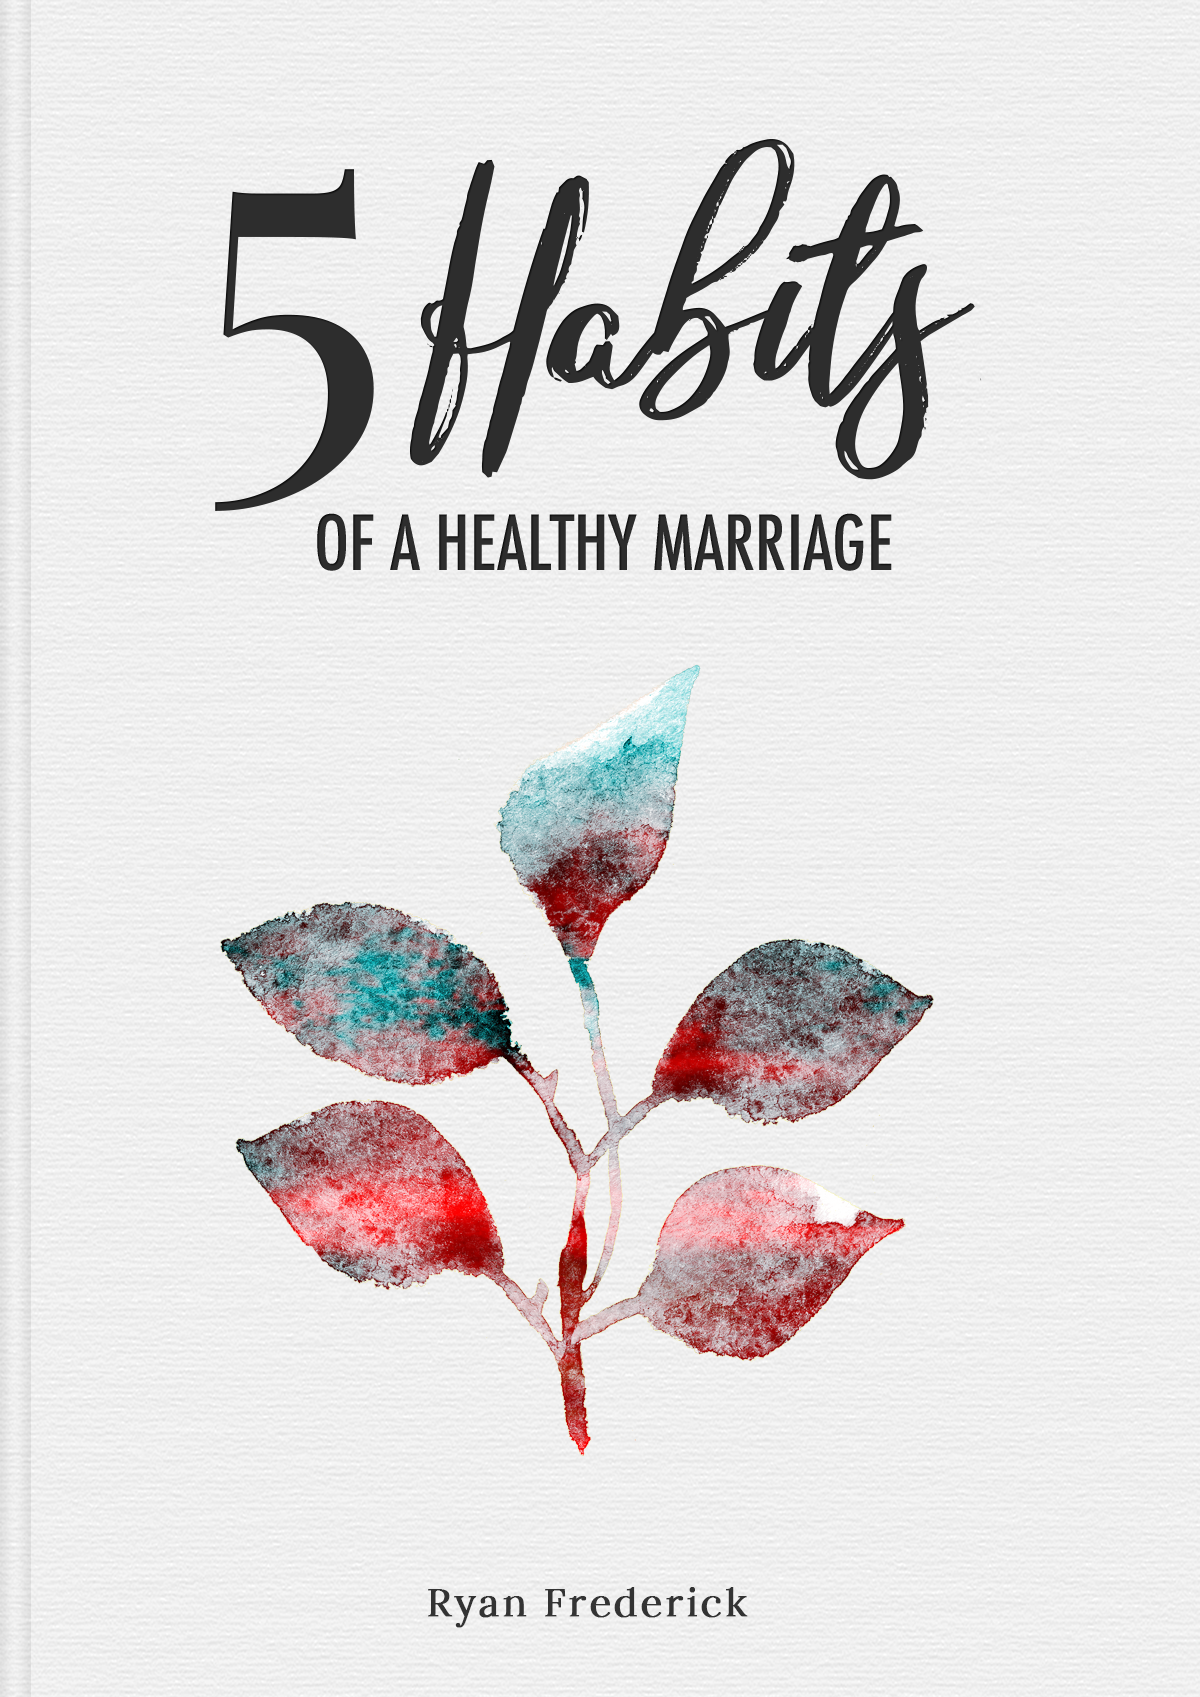 5 Habits of a Healthy Marriage book cover